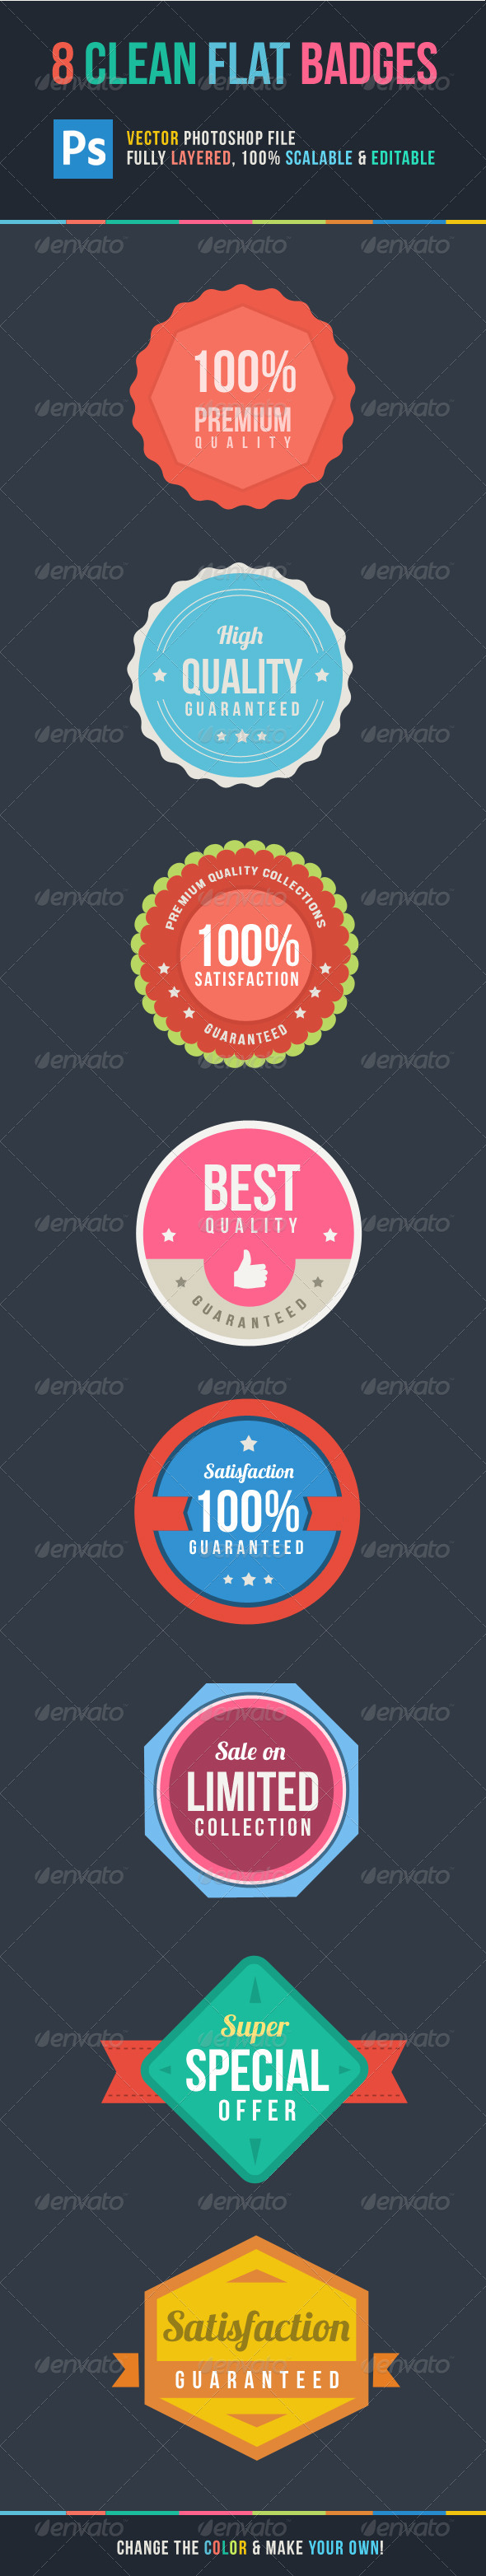 GraphicRiver 8 Clean Flat Badges 4638438